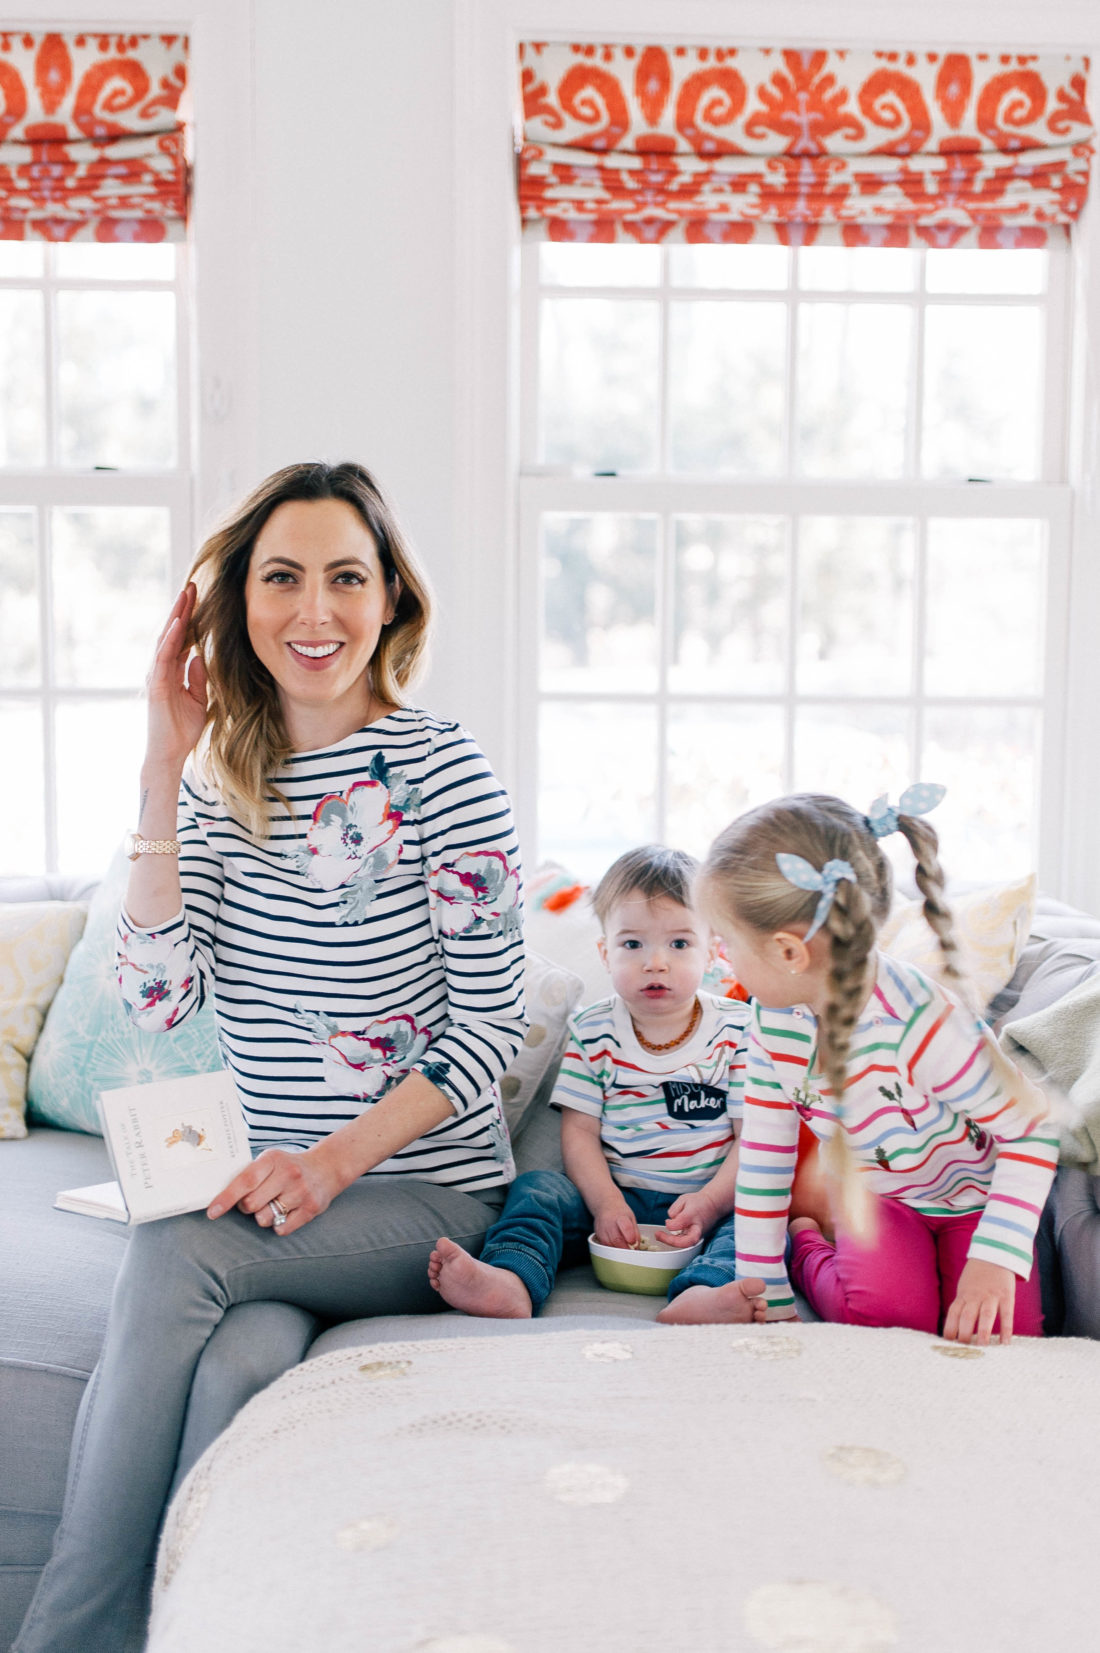 Eva Amurri Martino wears stripes and reads the Peter RAbbit book to her children on the couch at home in Connecticut